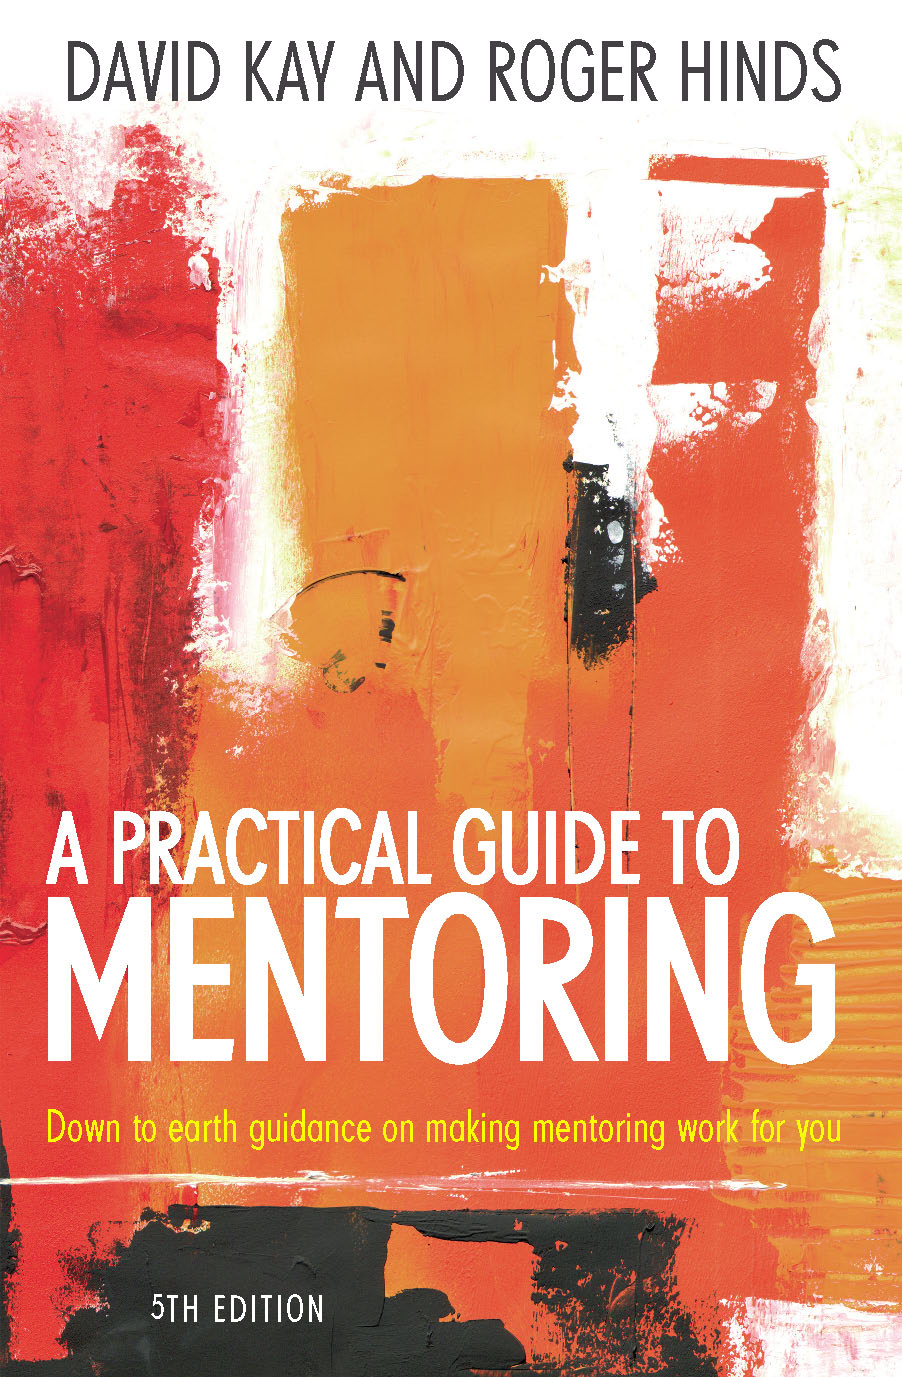 A Practical Guide To Mentoring 5e Down to earth guidance on making mentoring work for you